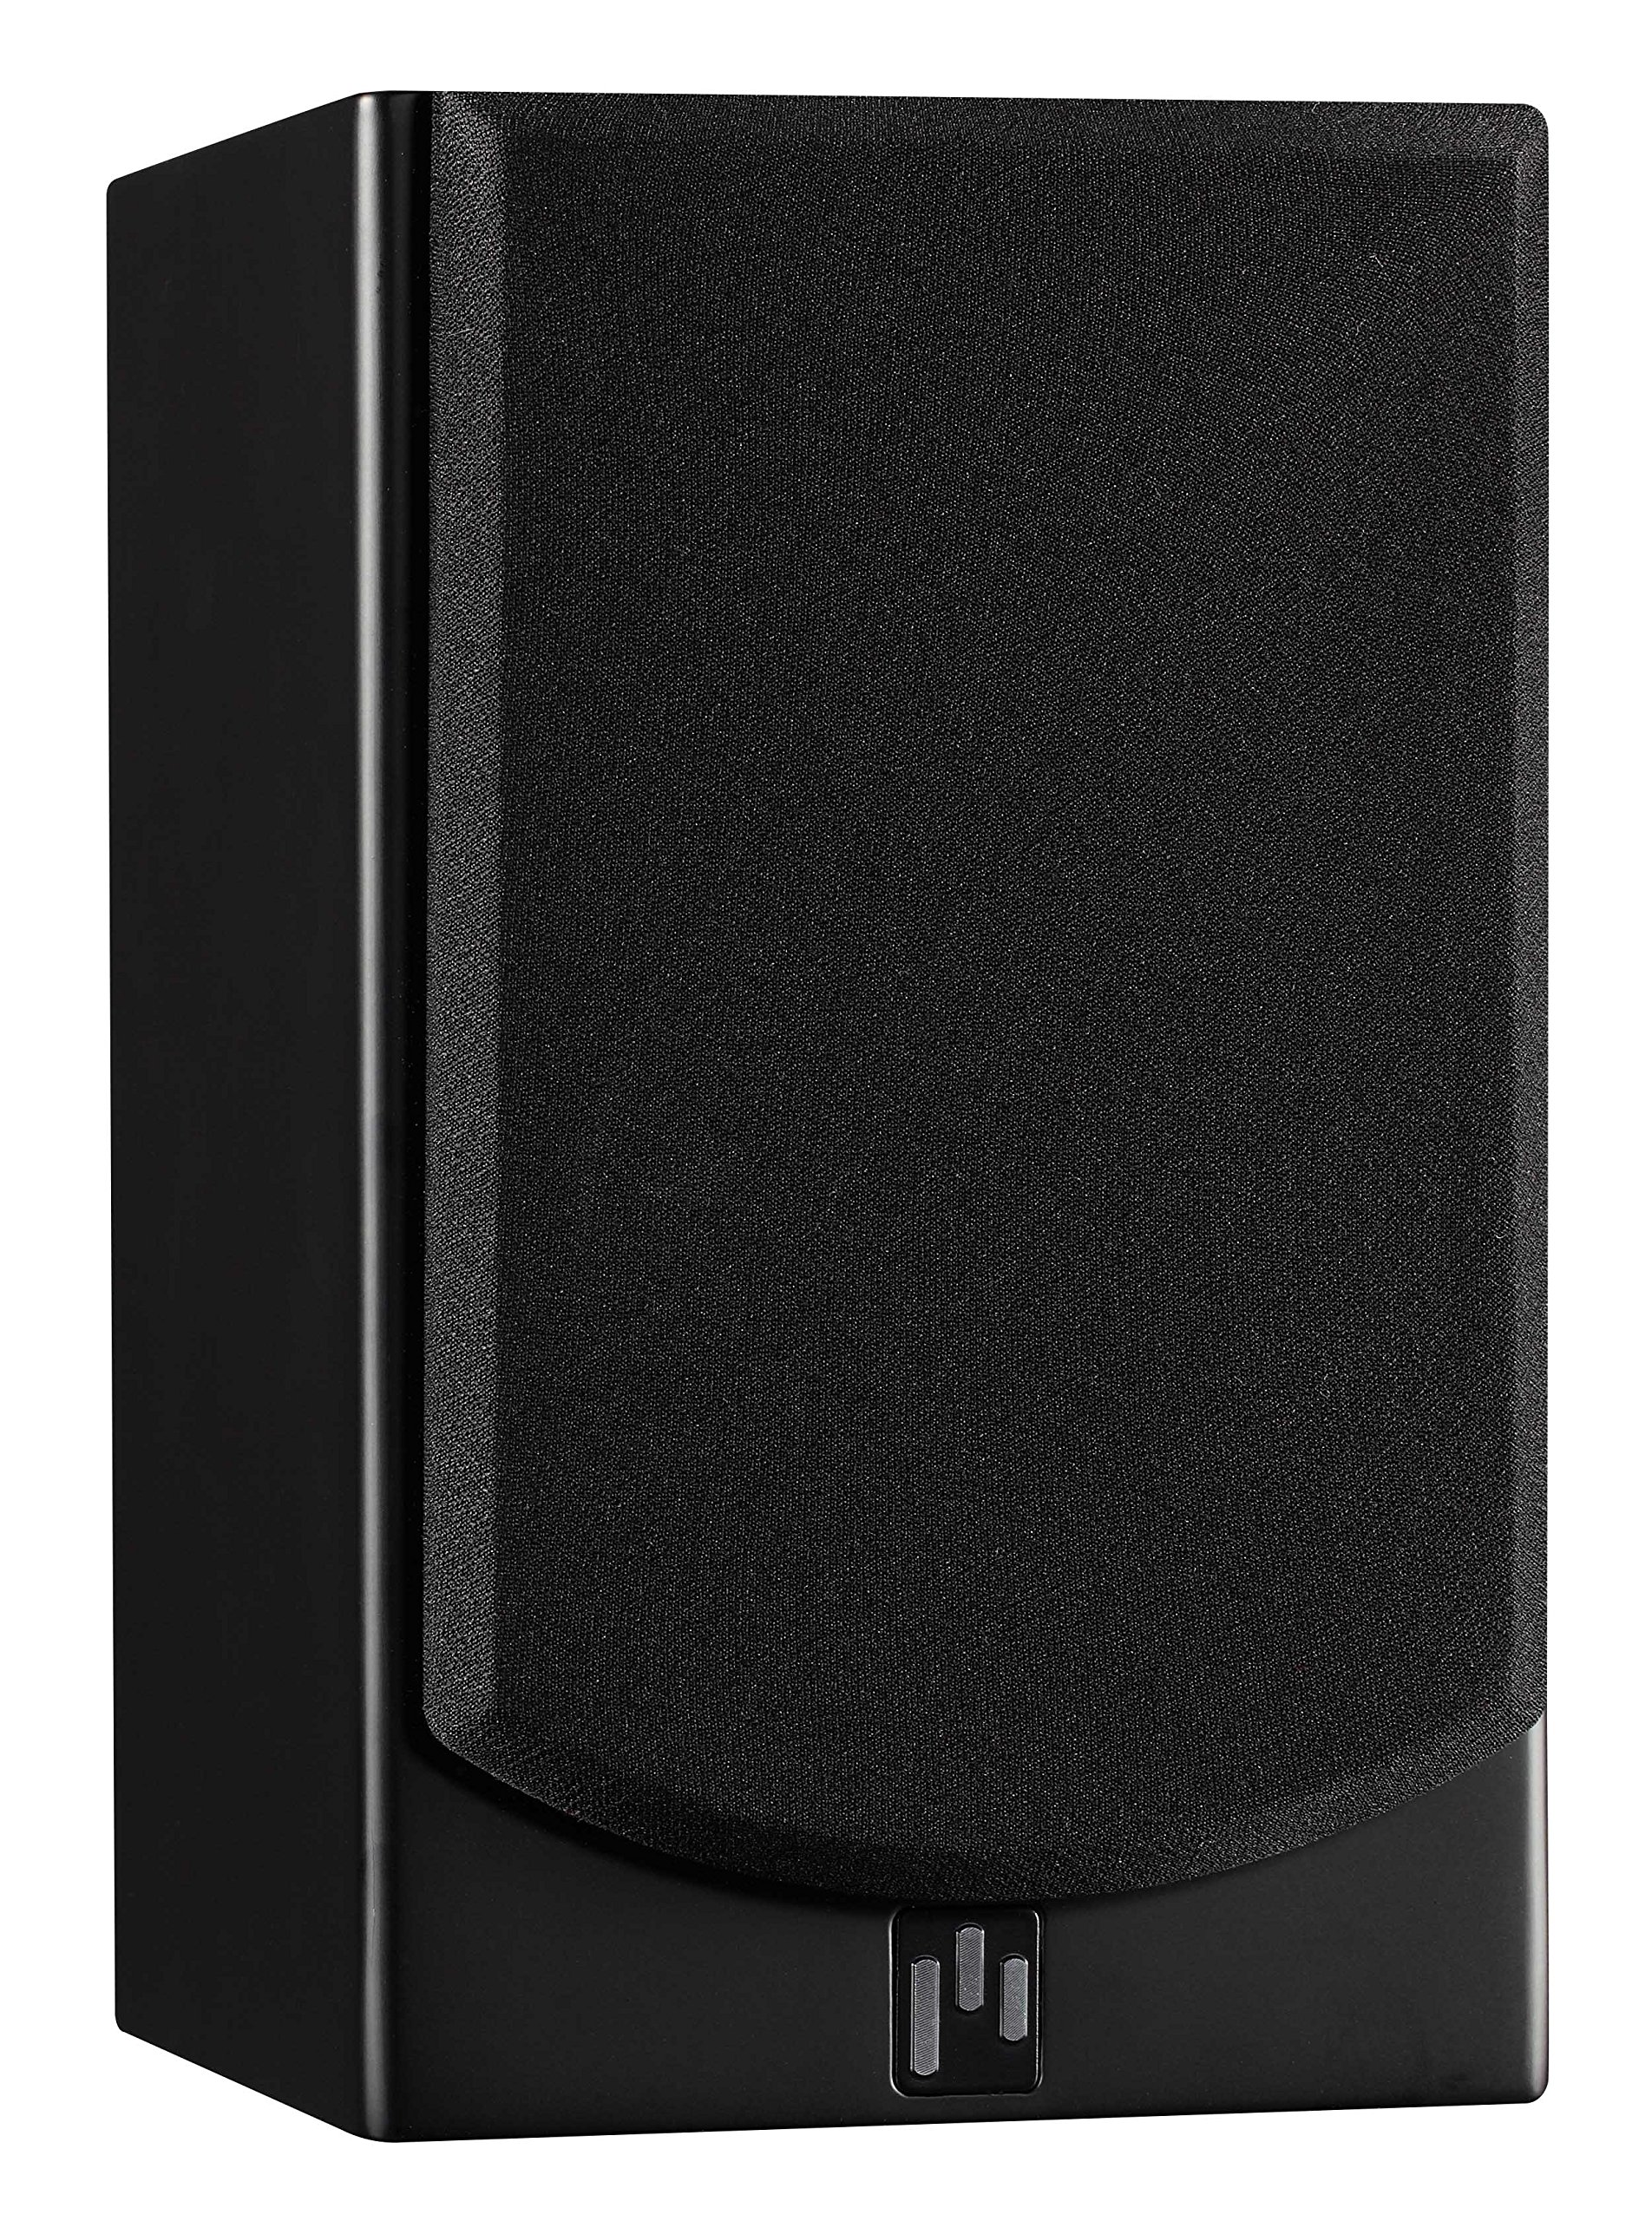 Aperion Audio Intimus 4B Satellite Speaker Pair (Stealth Black) by Aperion Audio